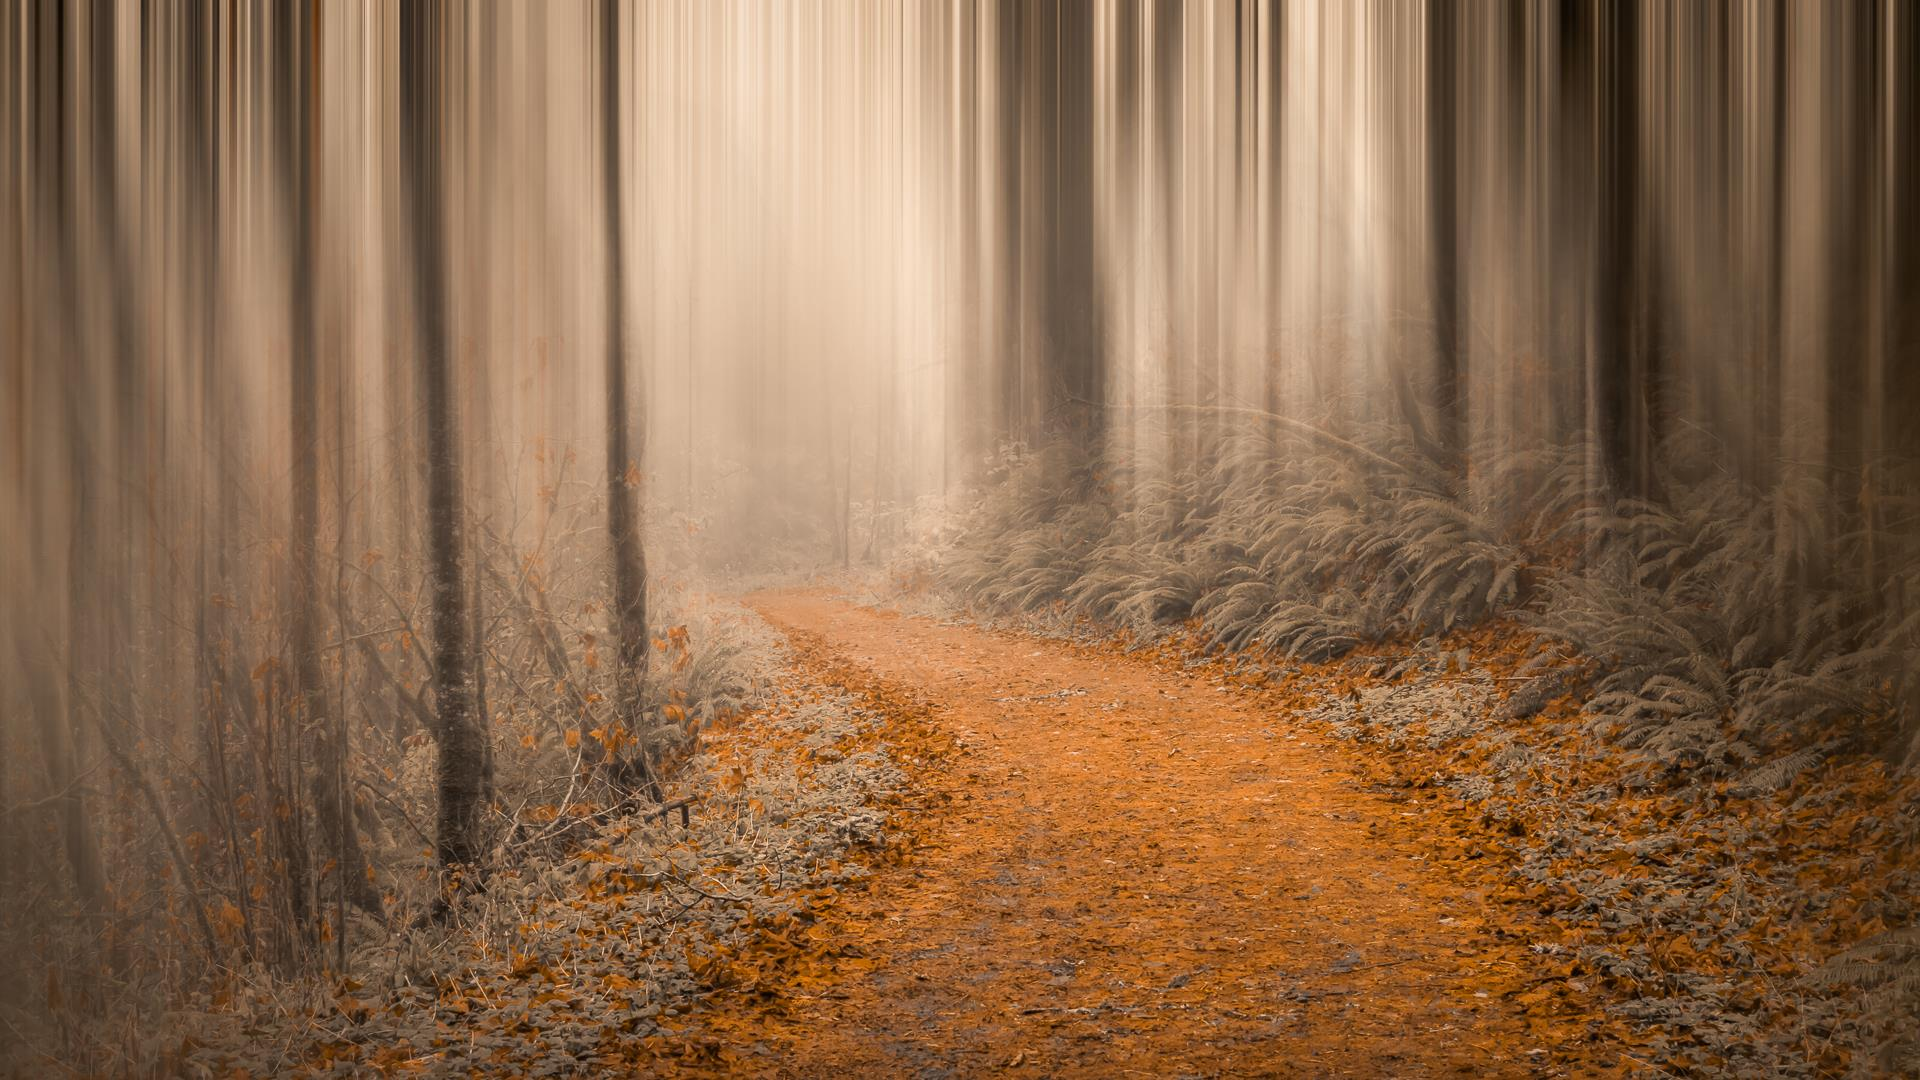 Don Schwartz, The Path Through the Misty Woods